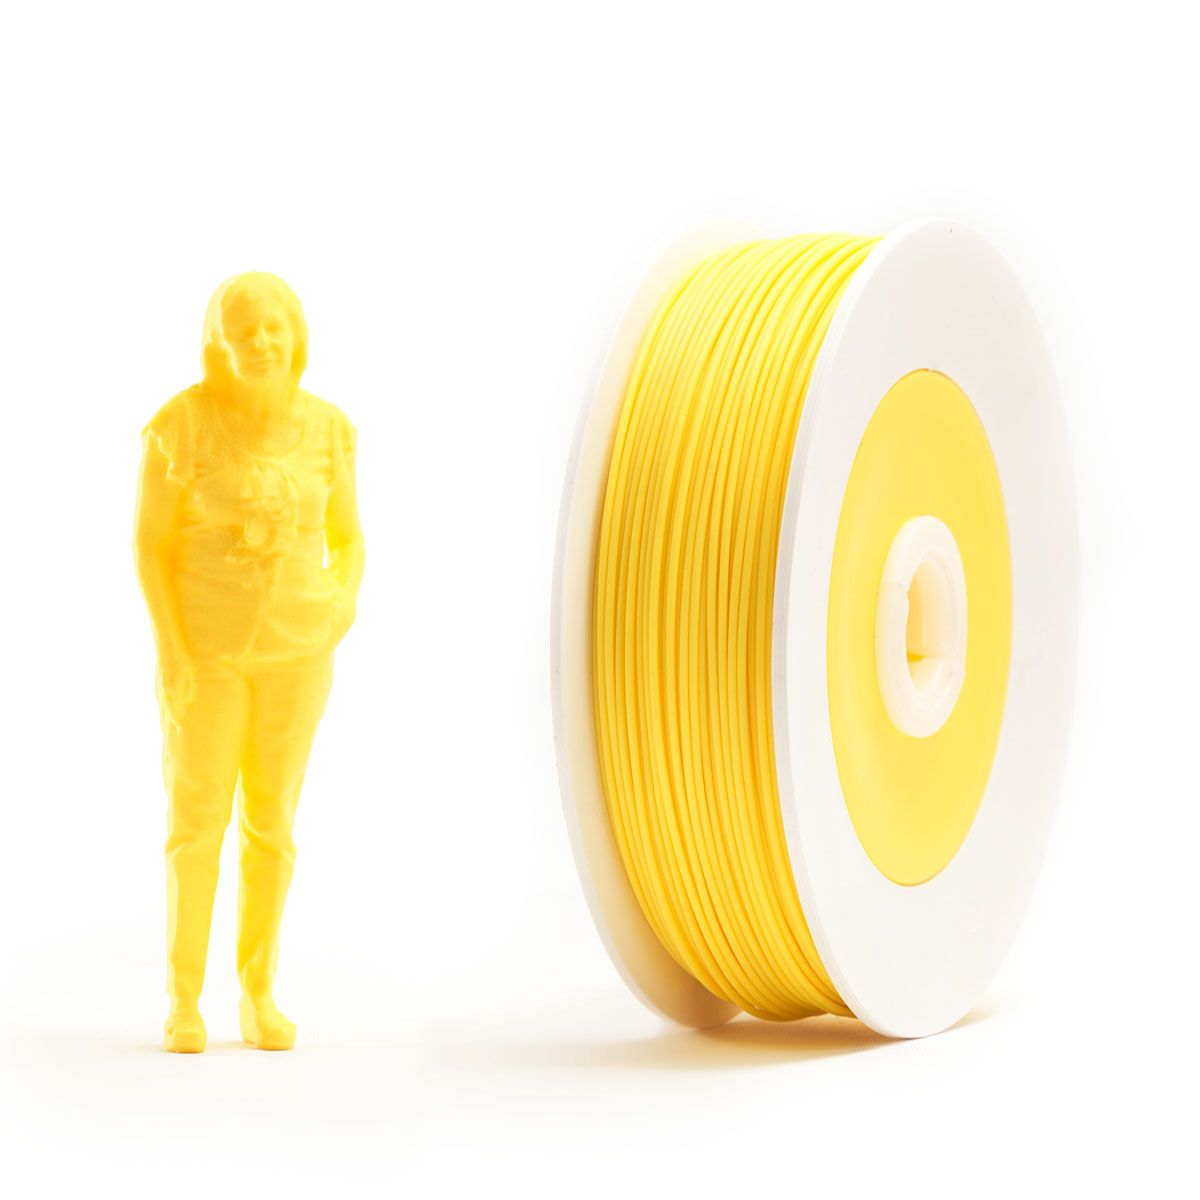 Pair of PLA spools: Yellow and Green